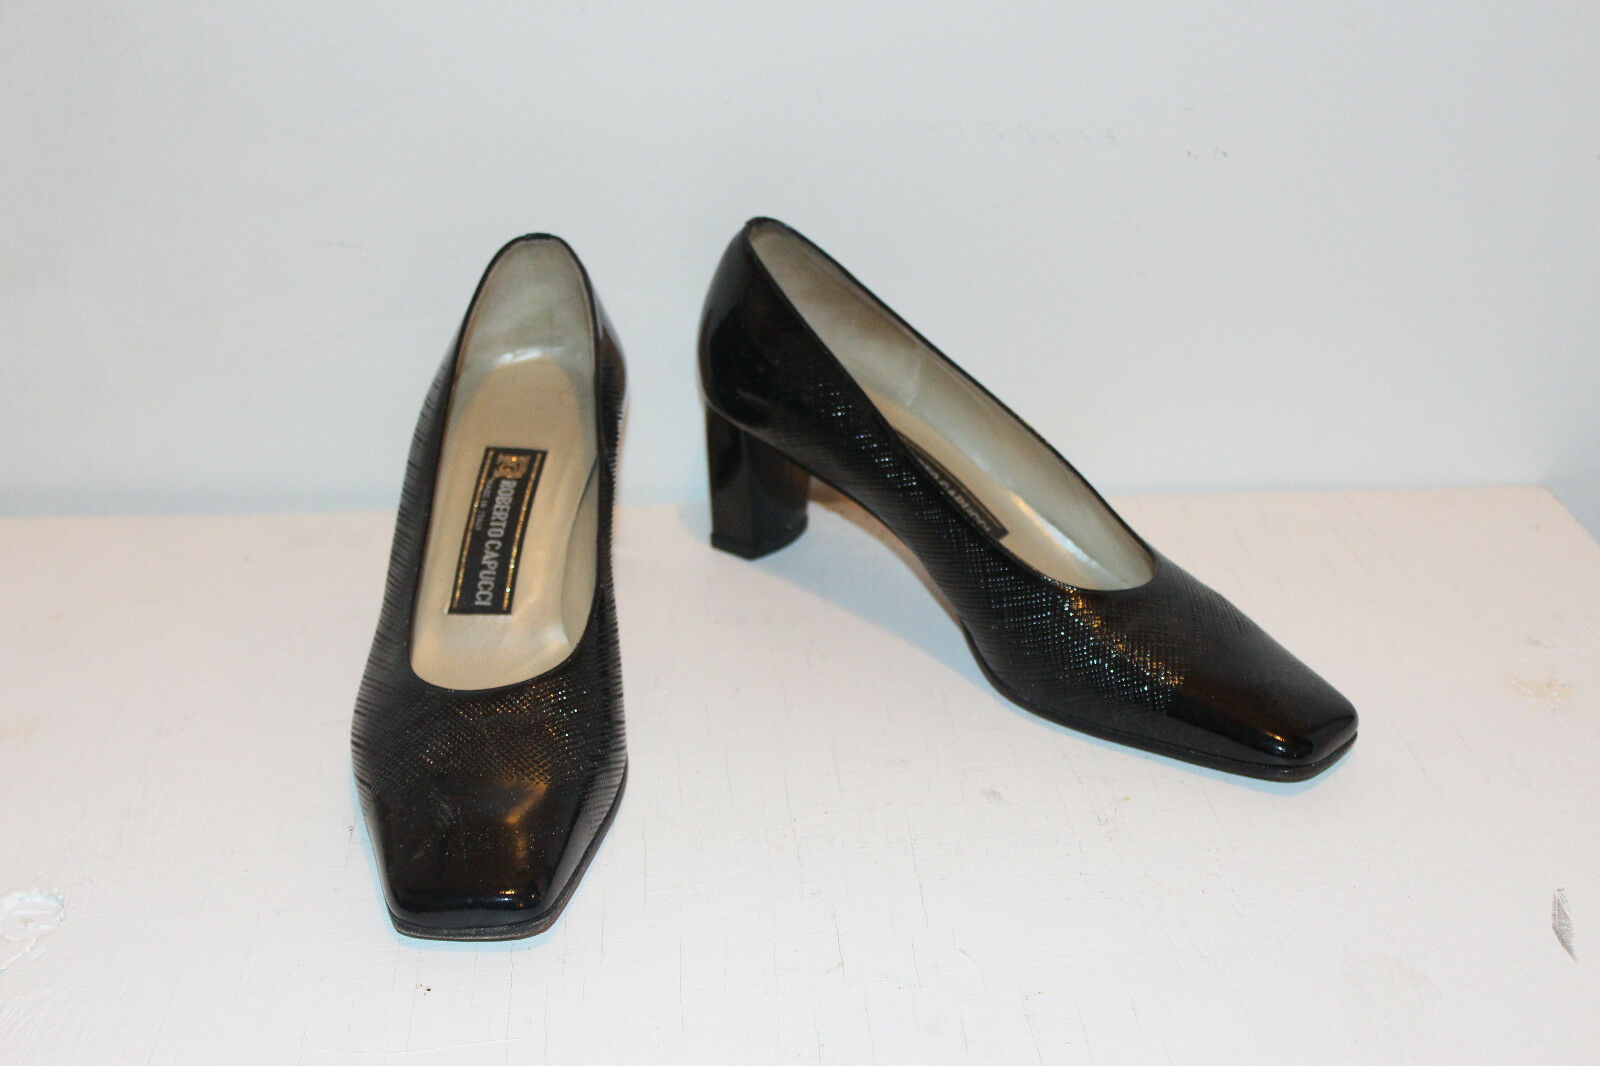 Designer Roberto Capucci Noir Cuir Patent pump taille 9.5 B, M MADE IN ITALY